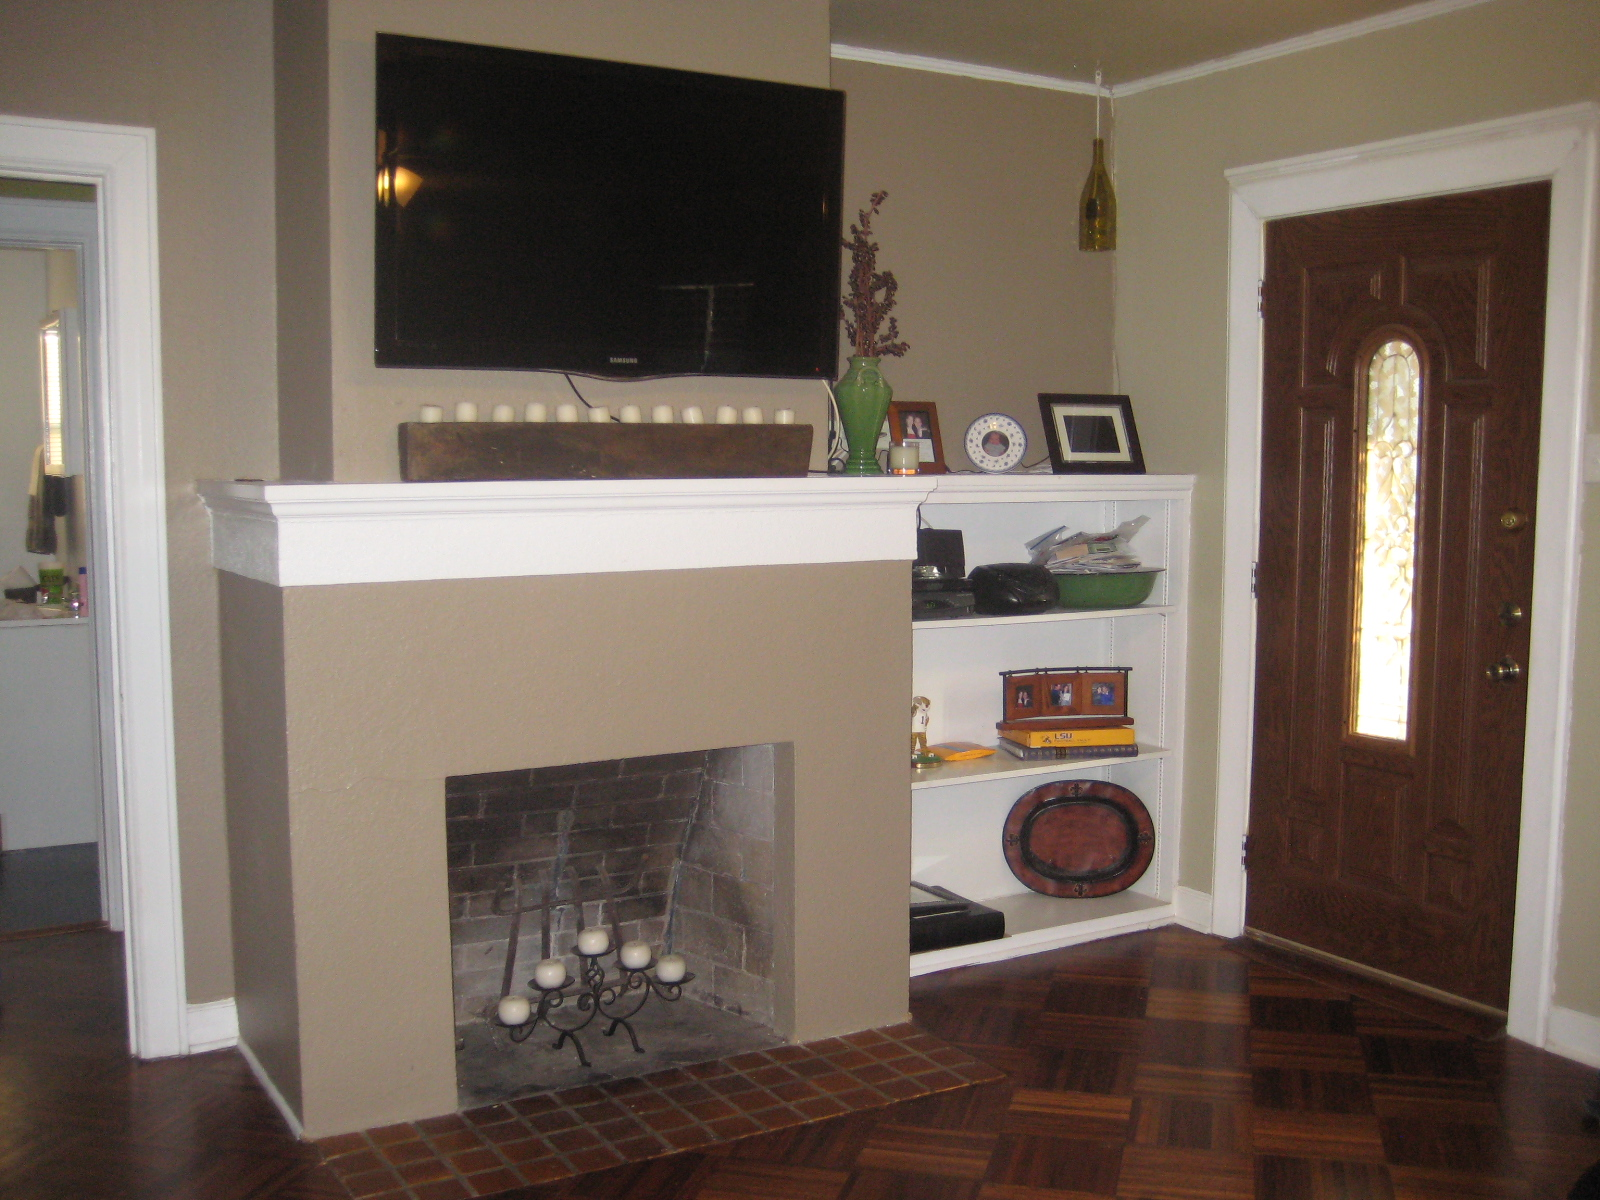 Tv Fireplace Cable Box Bristol CT TV Installation